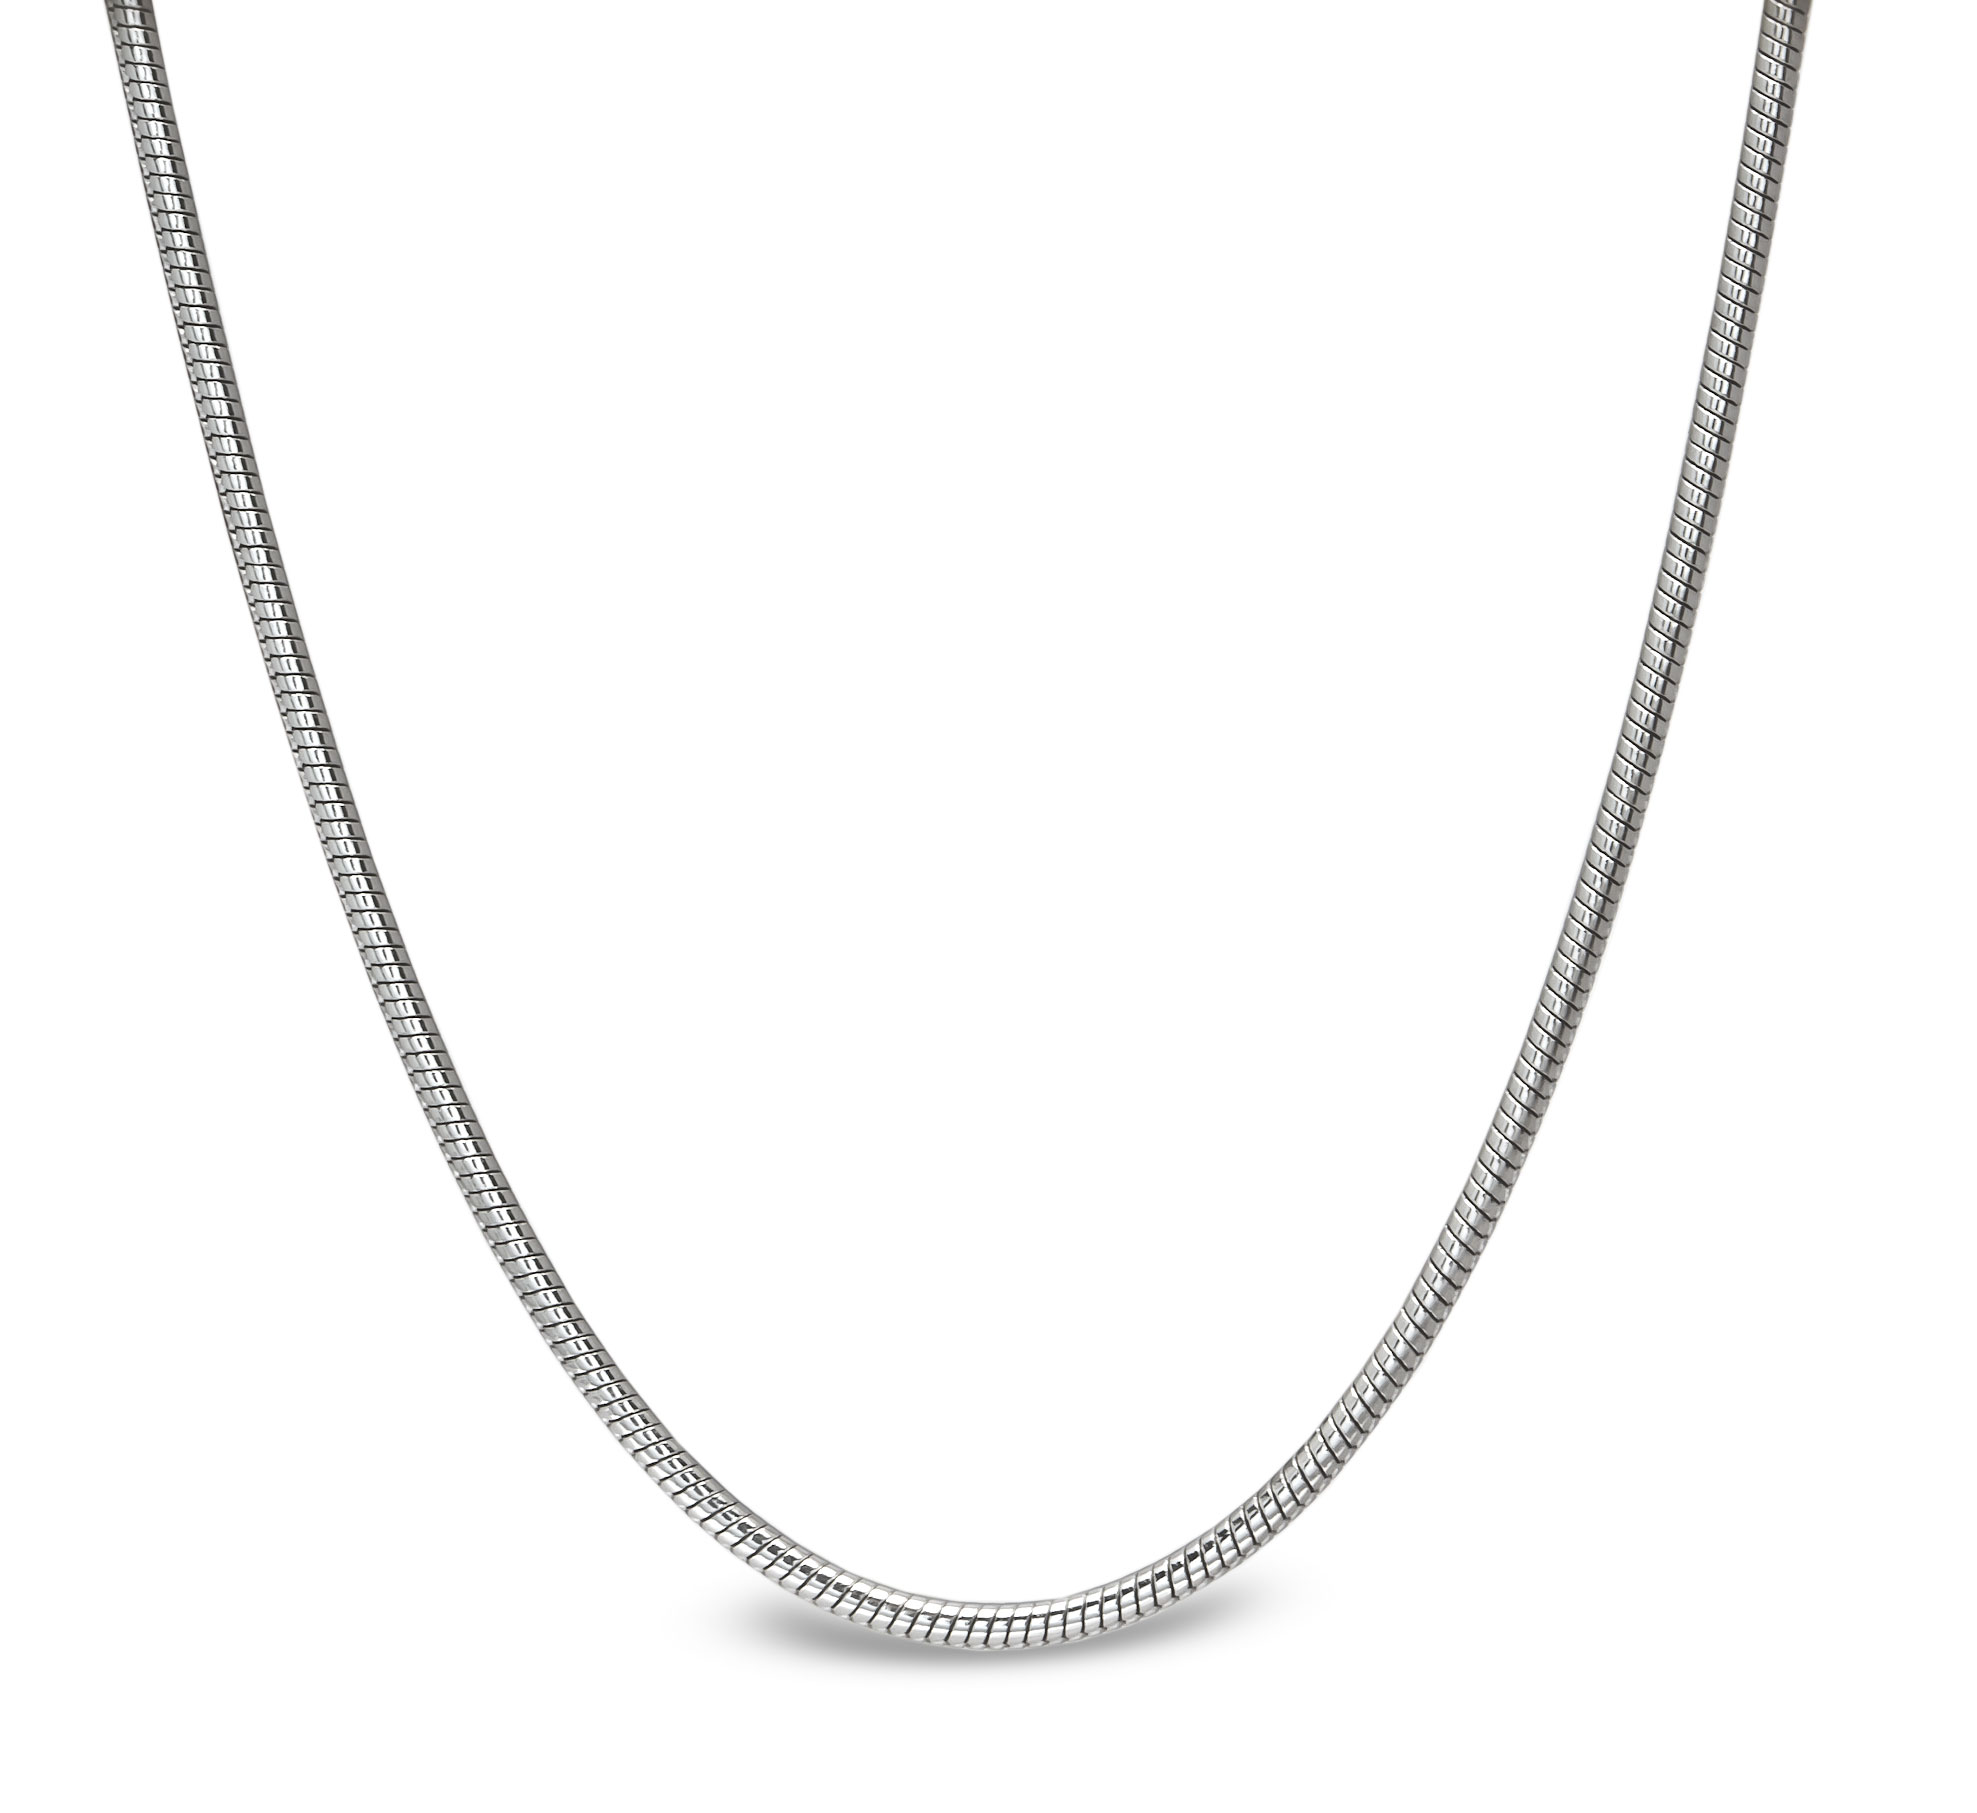 Classic Round Snake 14k White Gold Necklace - 18 in.